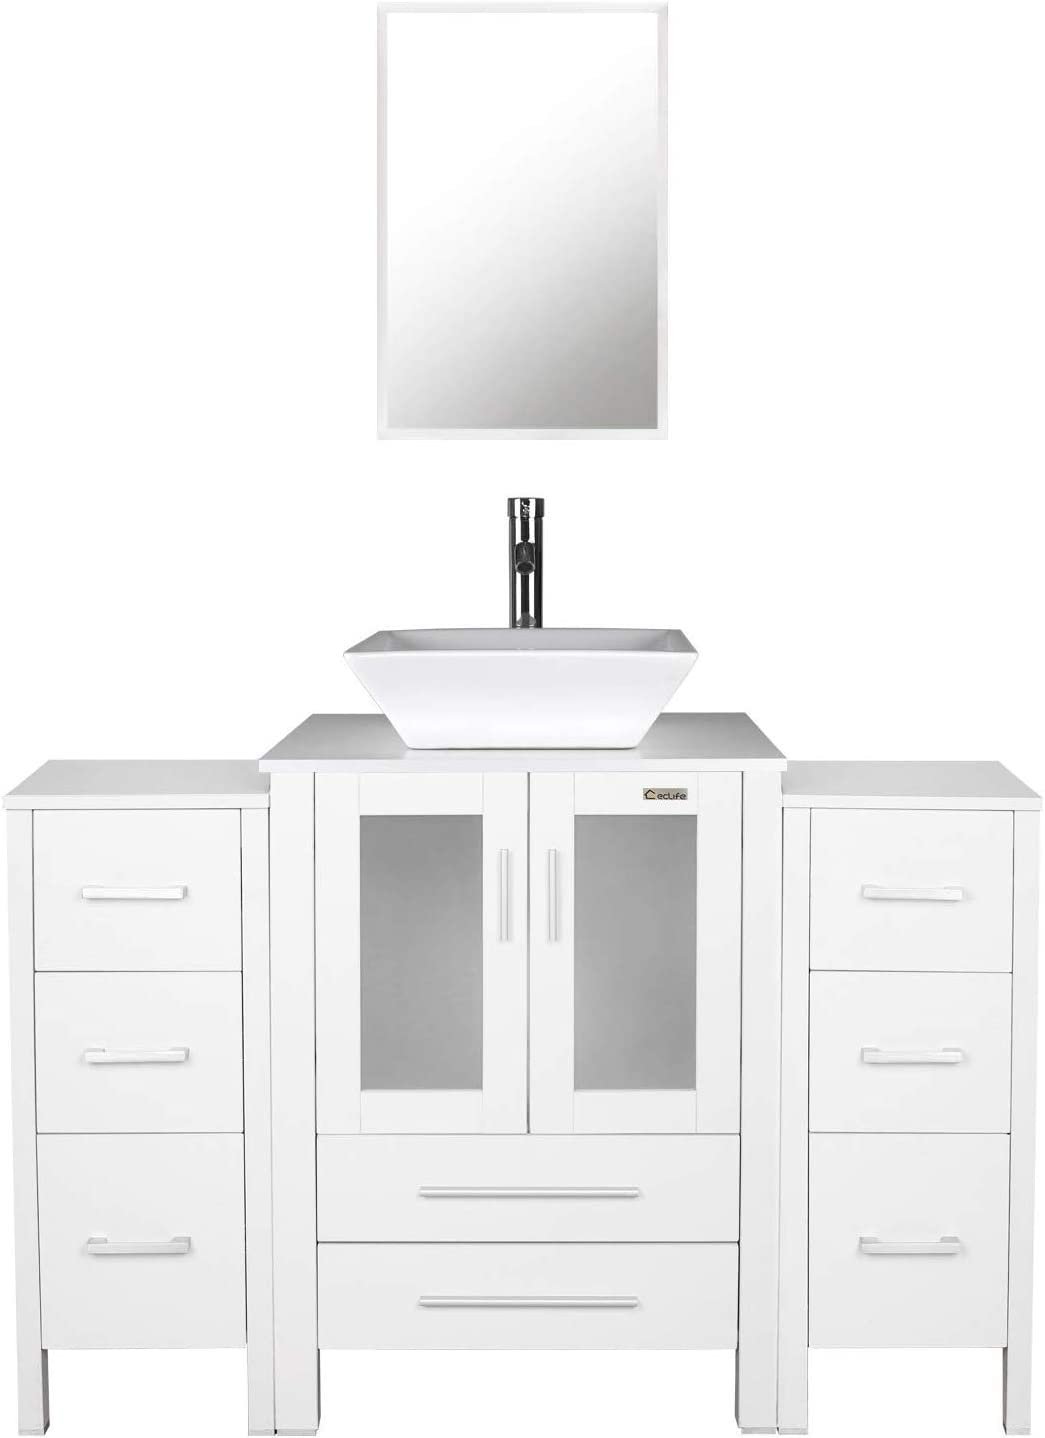 48″ White Bathroom Vanities and Sink Combo,Porcelain Vessel Sink Square ,Chrome Faucet,Drain Parts,2 Small Side Cabinet Removable,Mirror Included